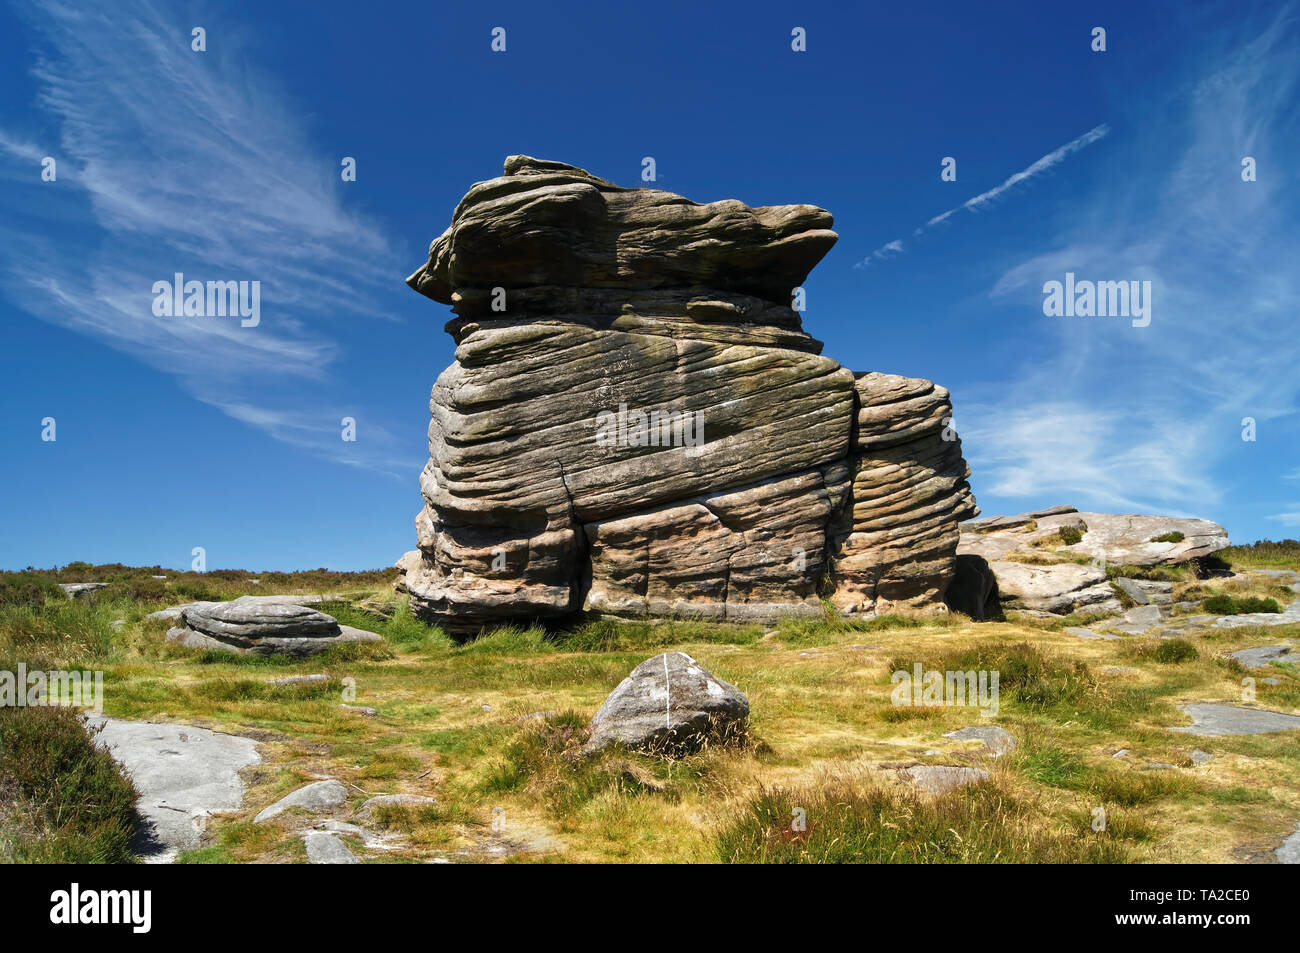 UK,South Yorkshire,Peak District,Near Hathersage,Mother Cap - Stock Image